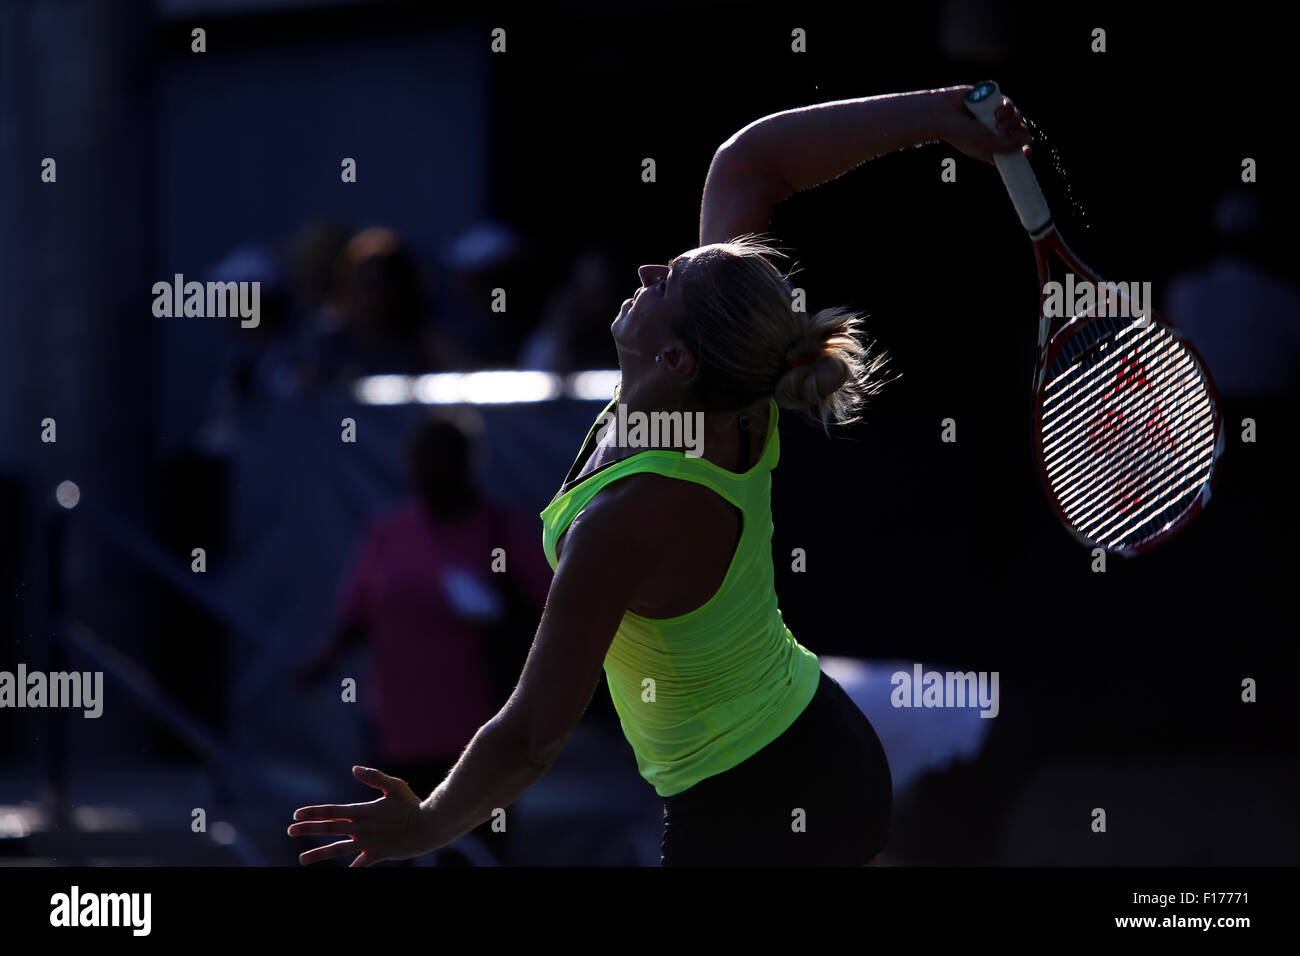 New York, New York, USA. 28th Aug, 2015. Germany's Sabine Lisicki serves during a practice session at the Billie Jean King USTA National Tennis Center in Flushing Meadows, New York late in the afternoon on August 28th, 2016 in preparation for the U.S. Open, which begins on Monday, August 31st. Lisicki is seeded 24th. Credit:  Adam Stoltman/Alamy Live News Stock Photo